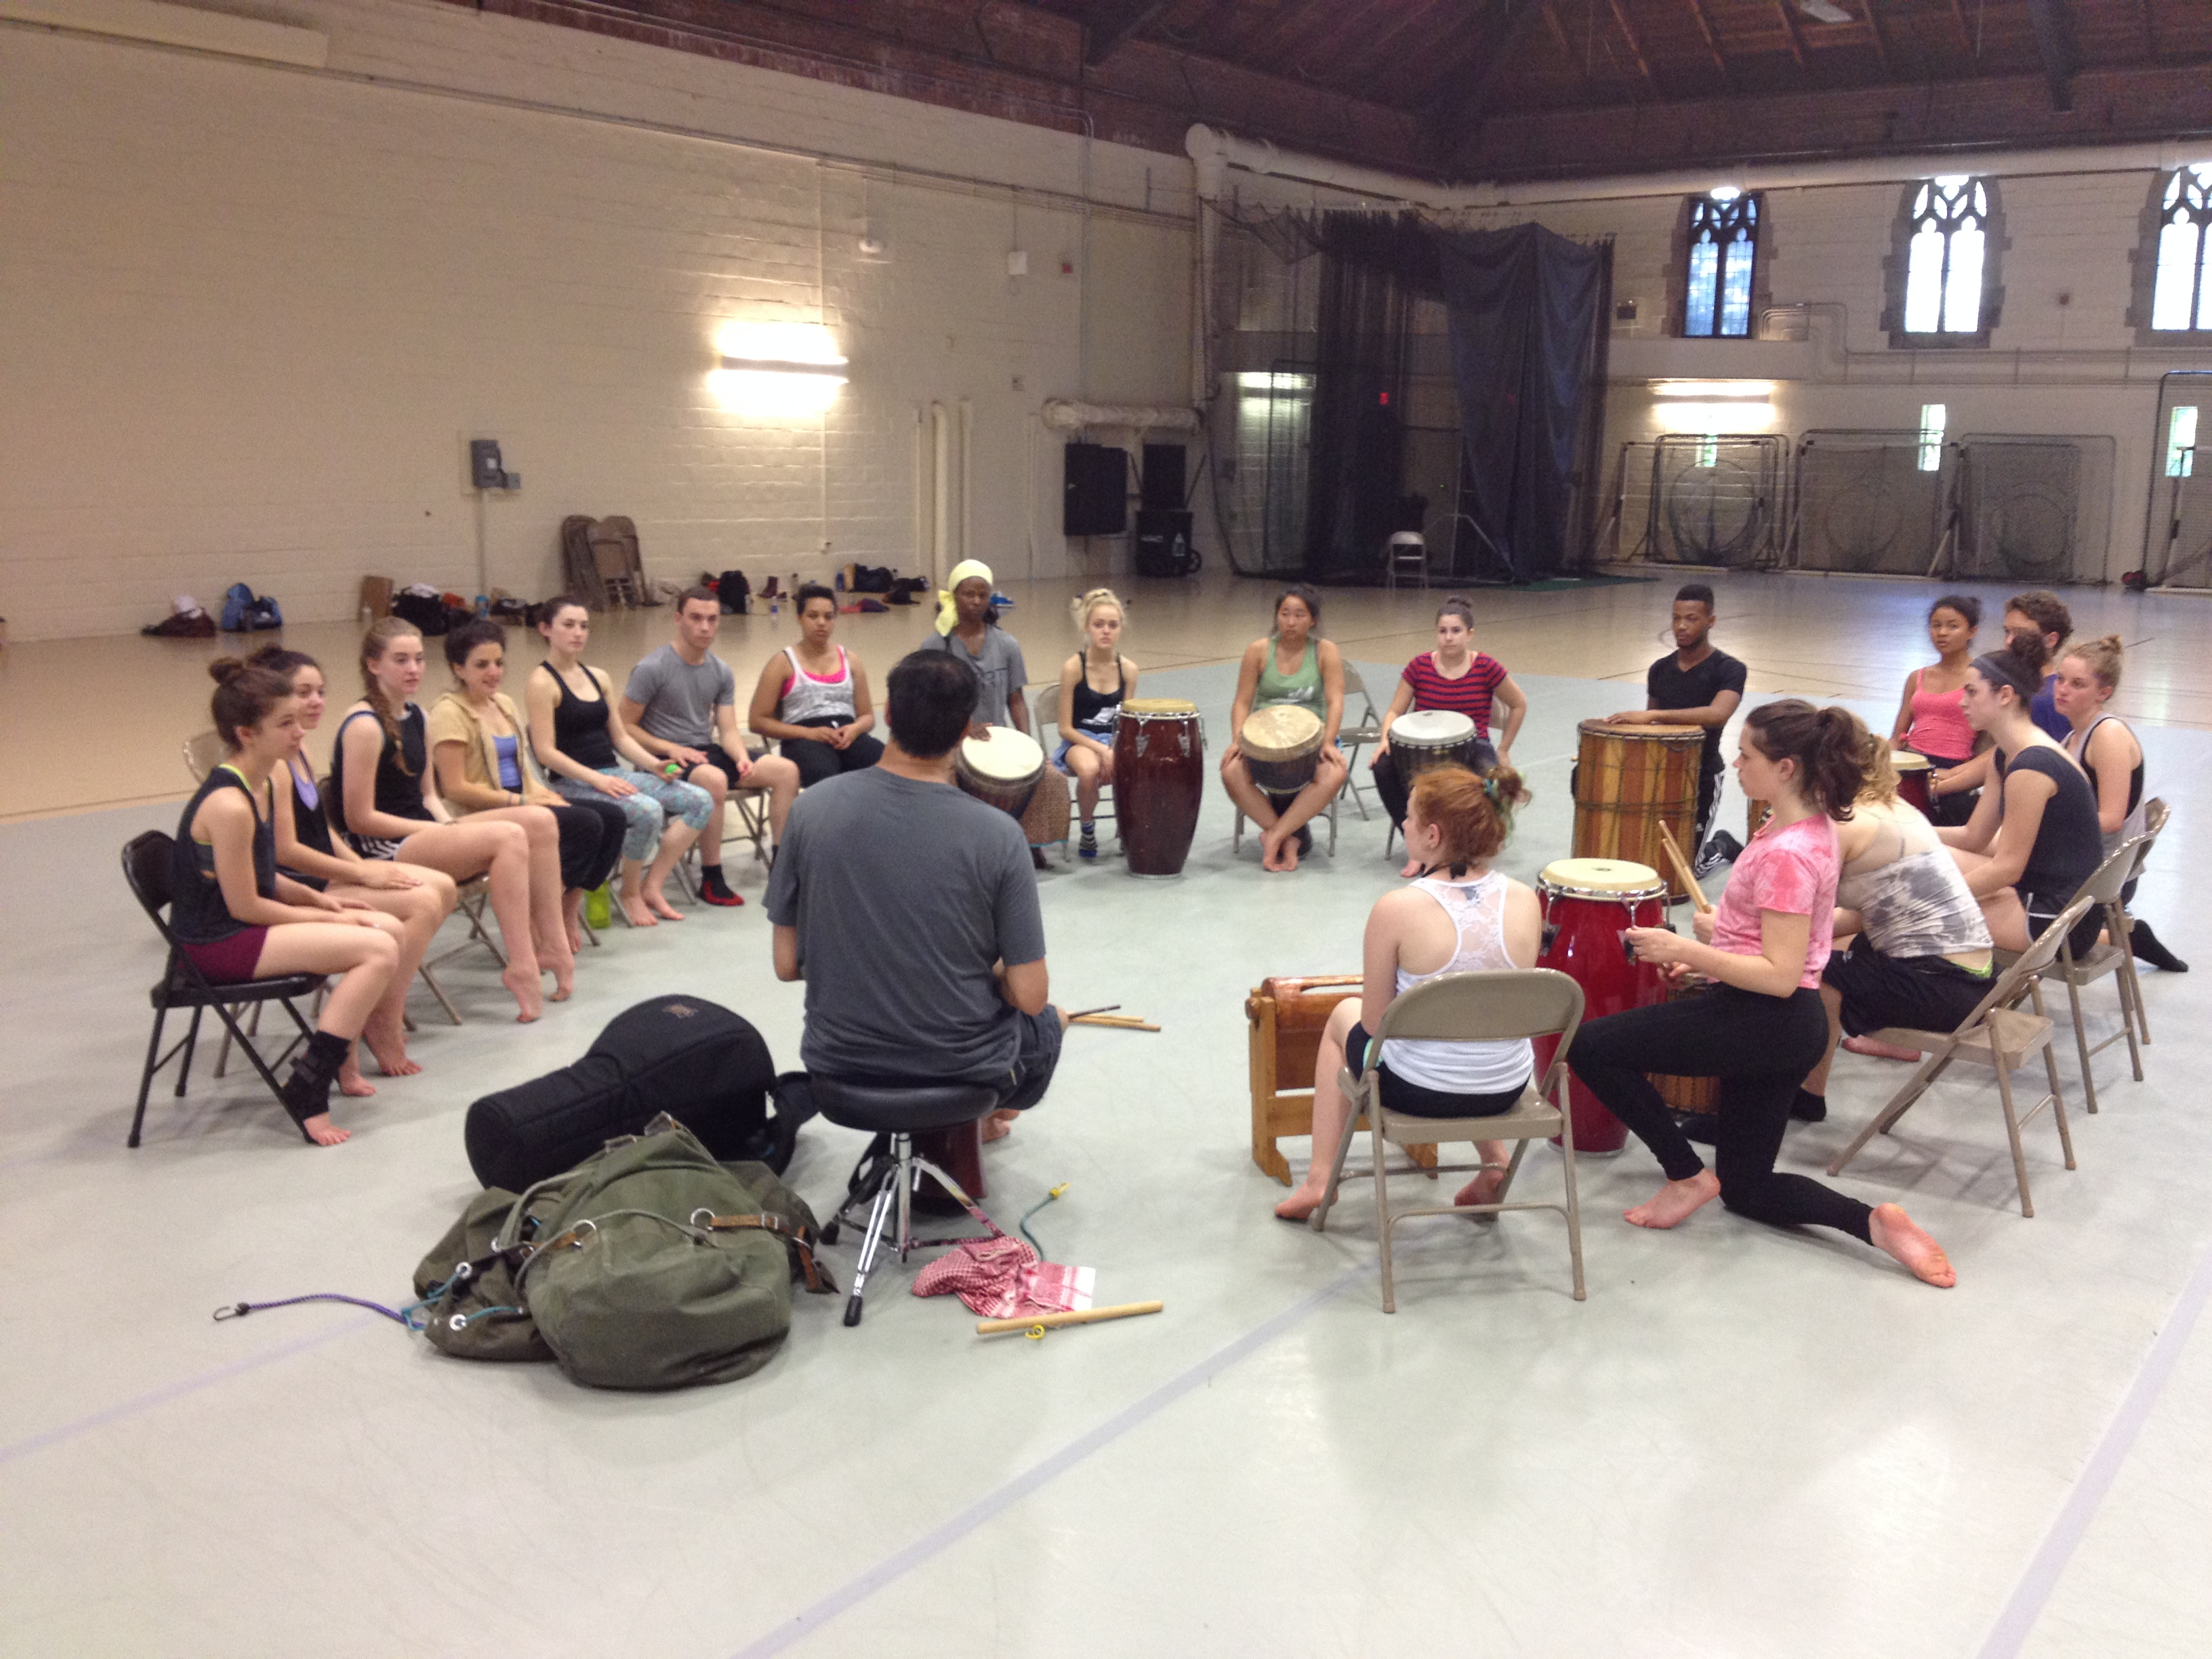 The Combined Experience of Live Music and Dance – Bates